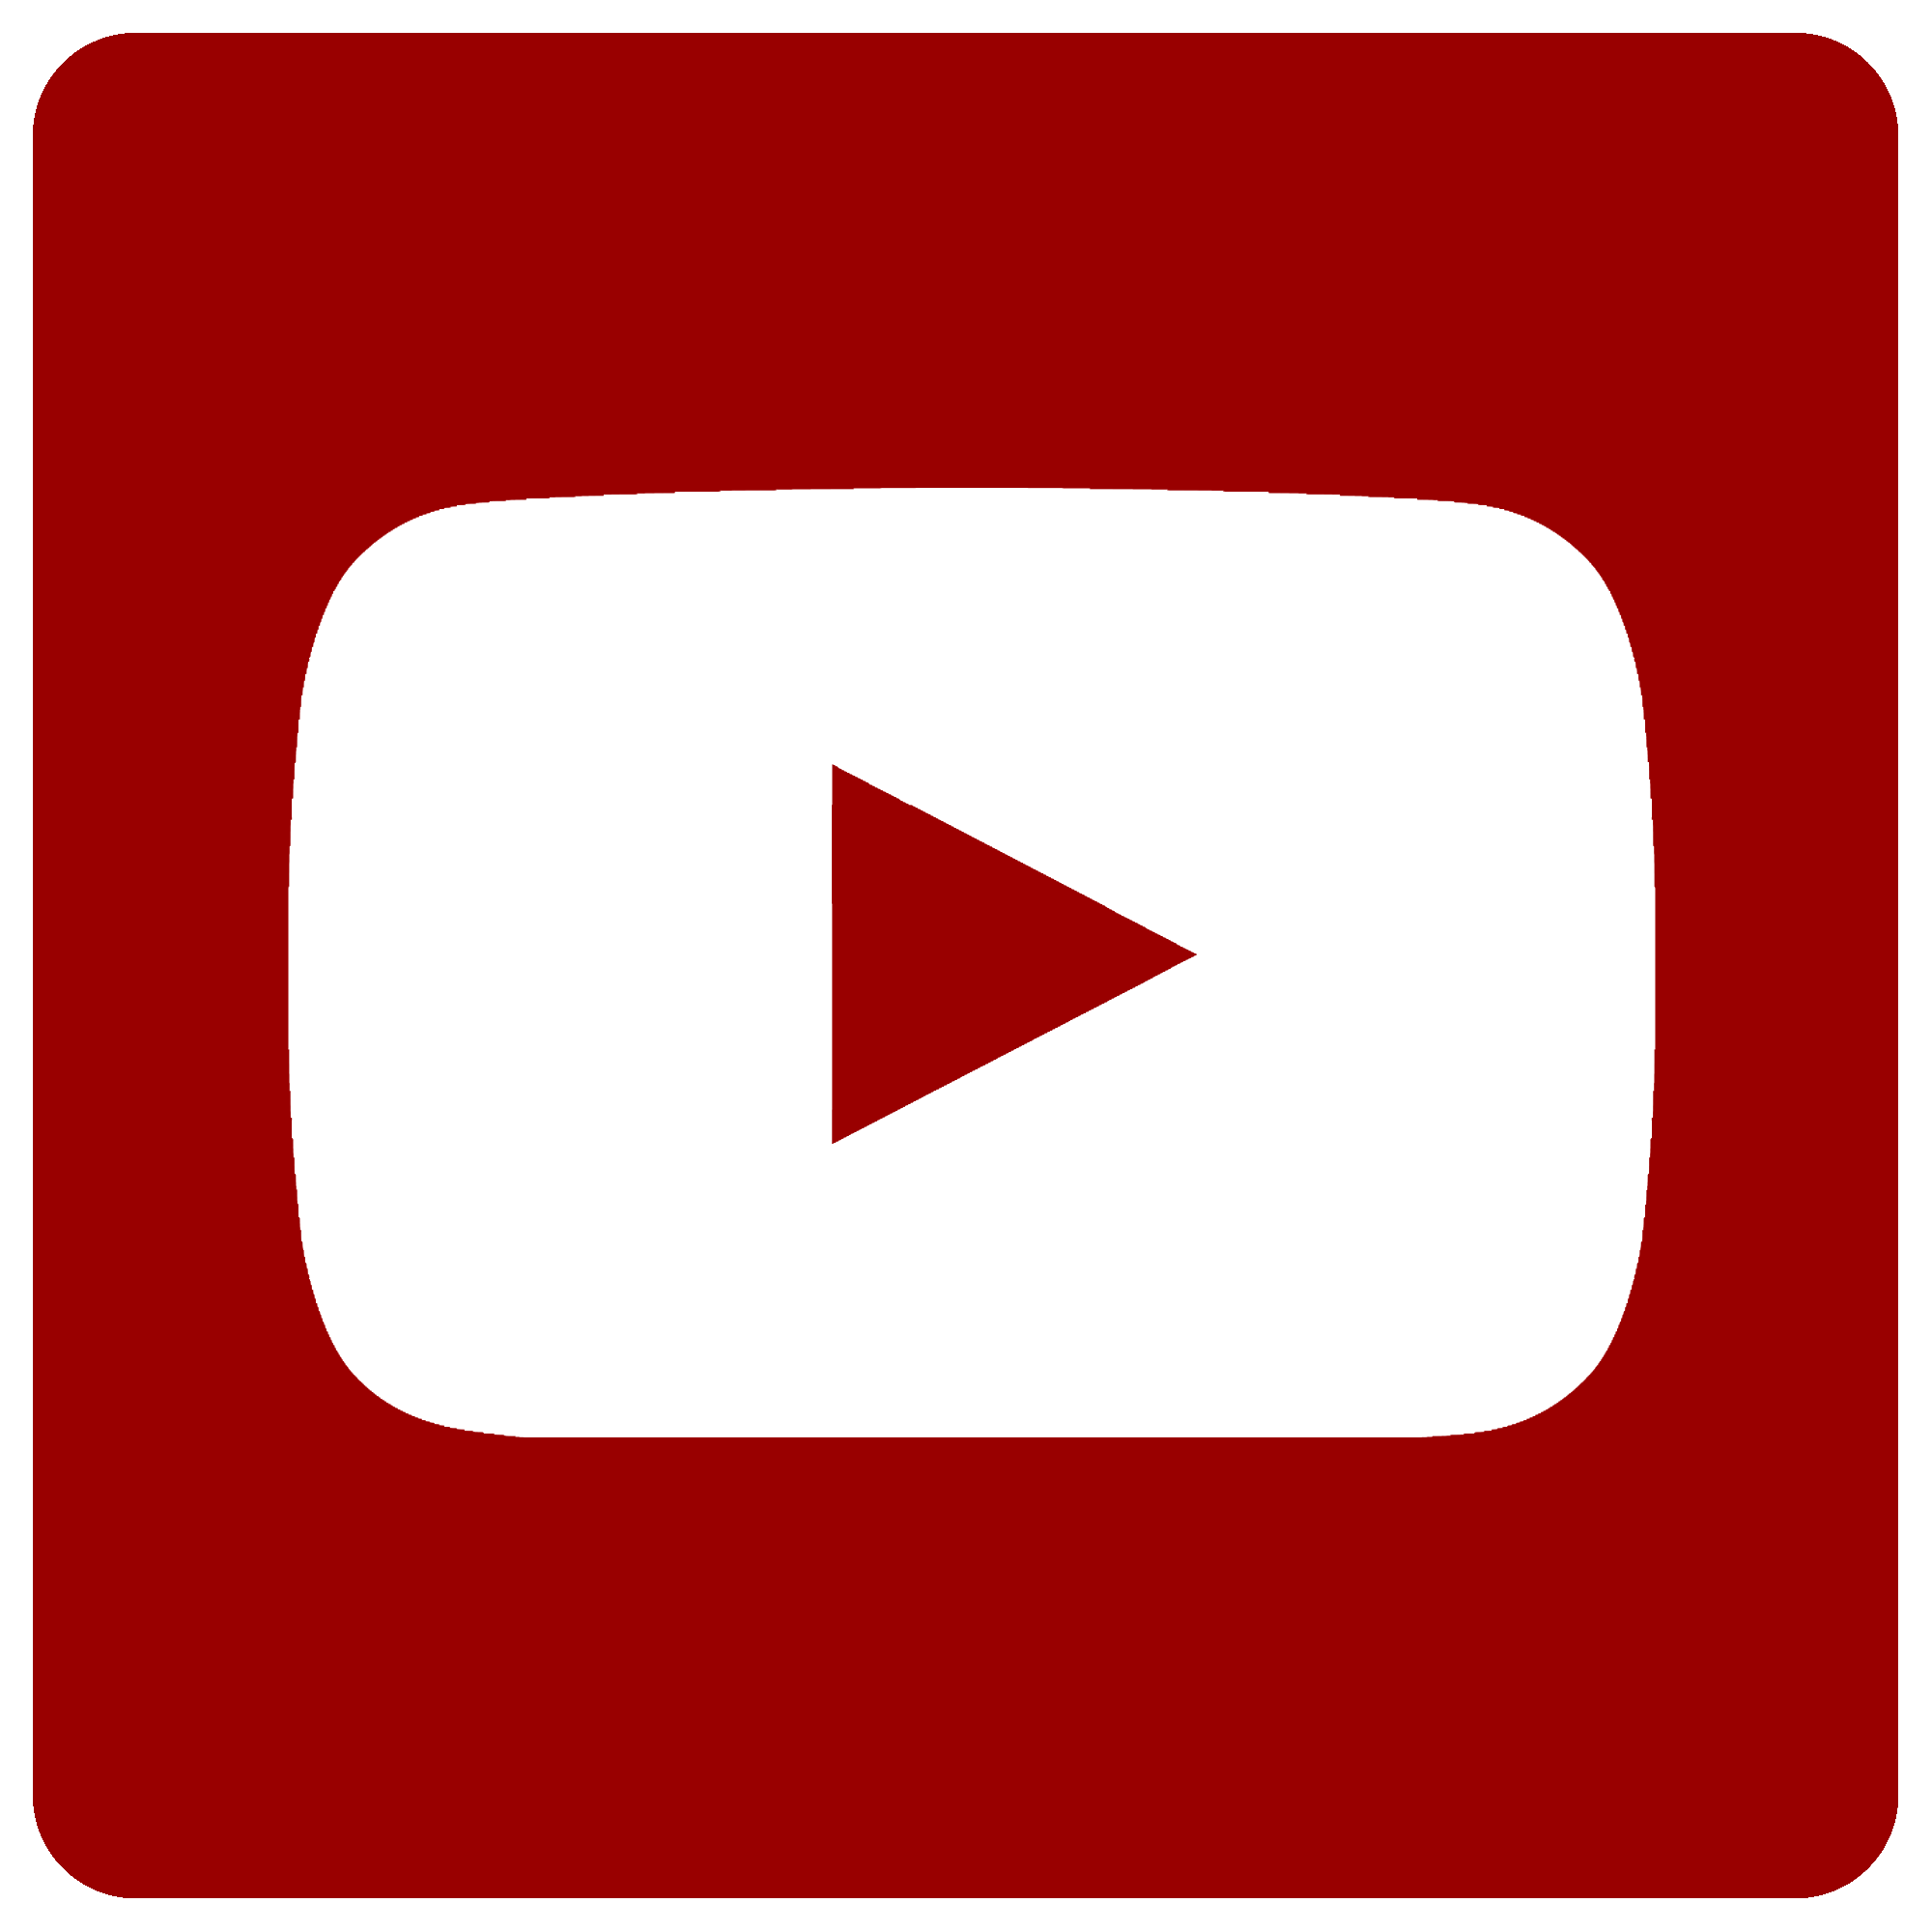 Free Youtube Logo Pictures image #46038